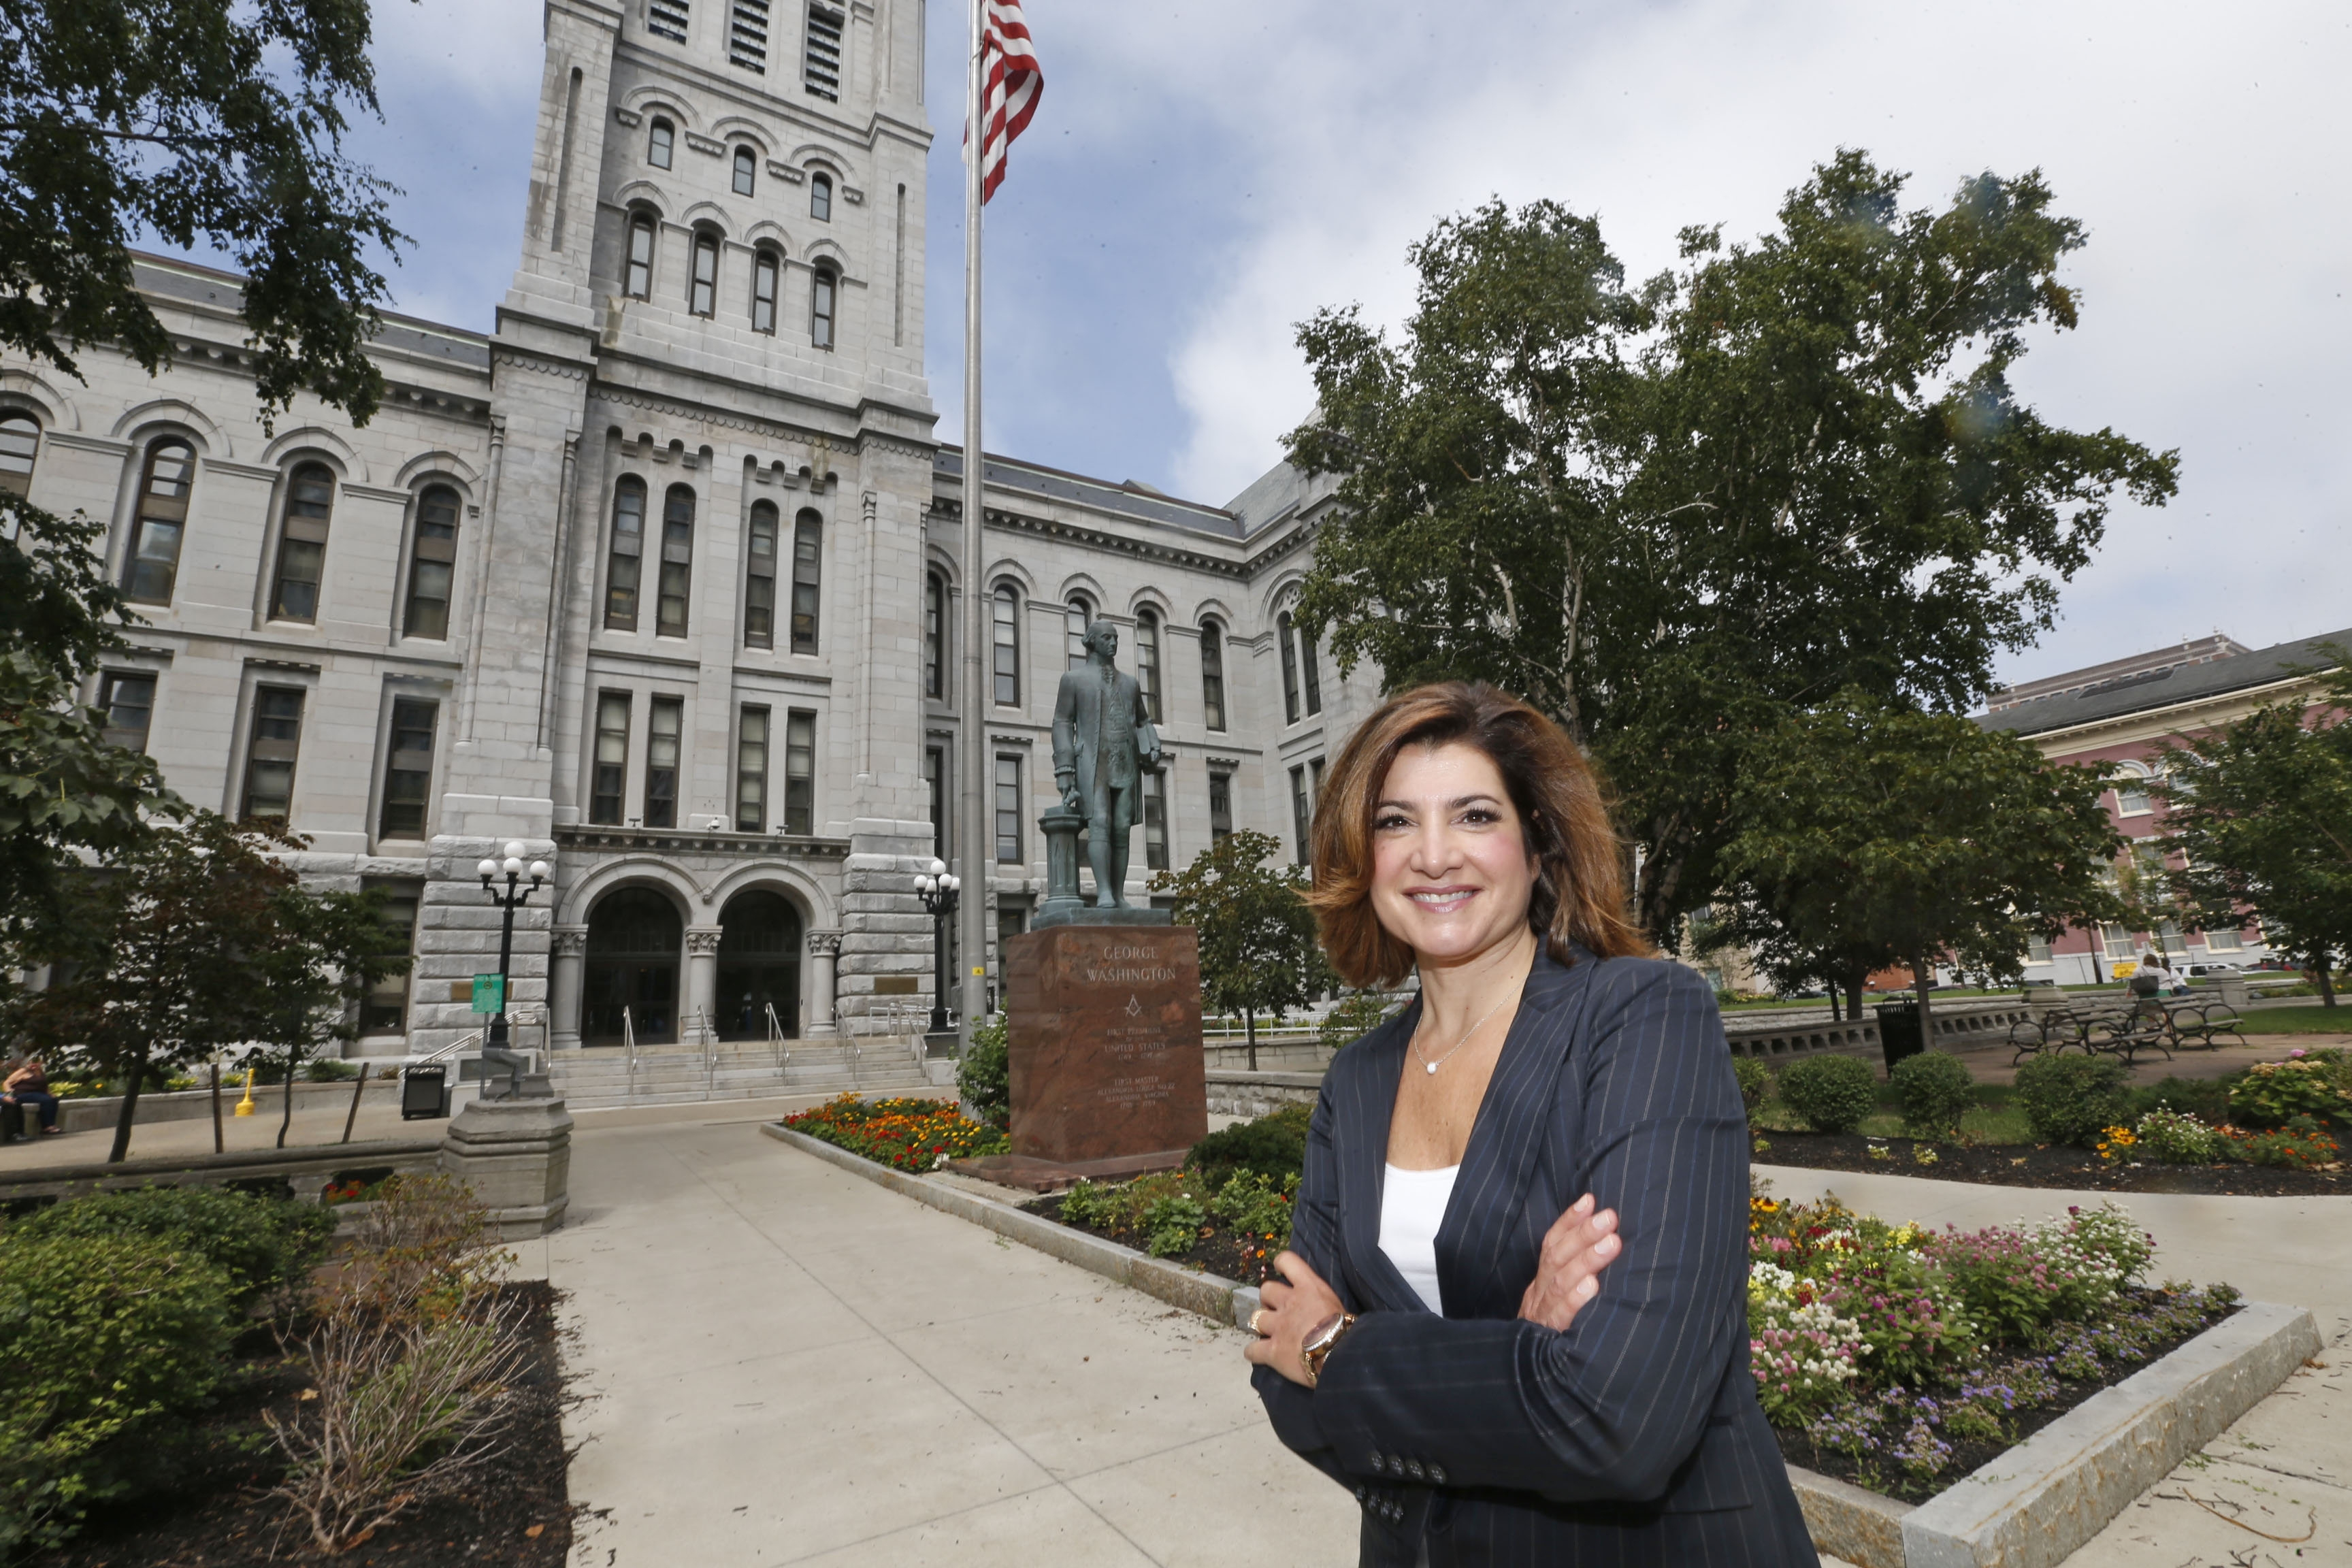 Former news anchor Joanna Pasceri needs her boss, acting District Attorney Michael J. Flaherty Jr., to keep his seat this election season.